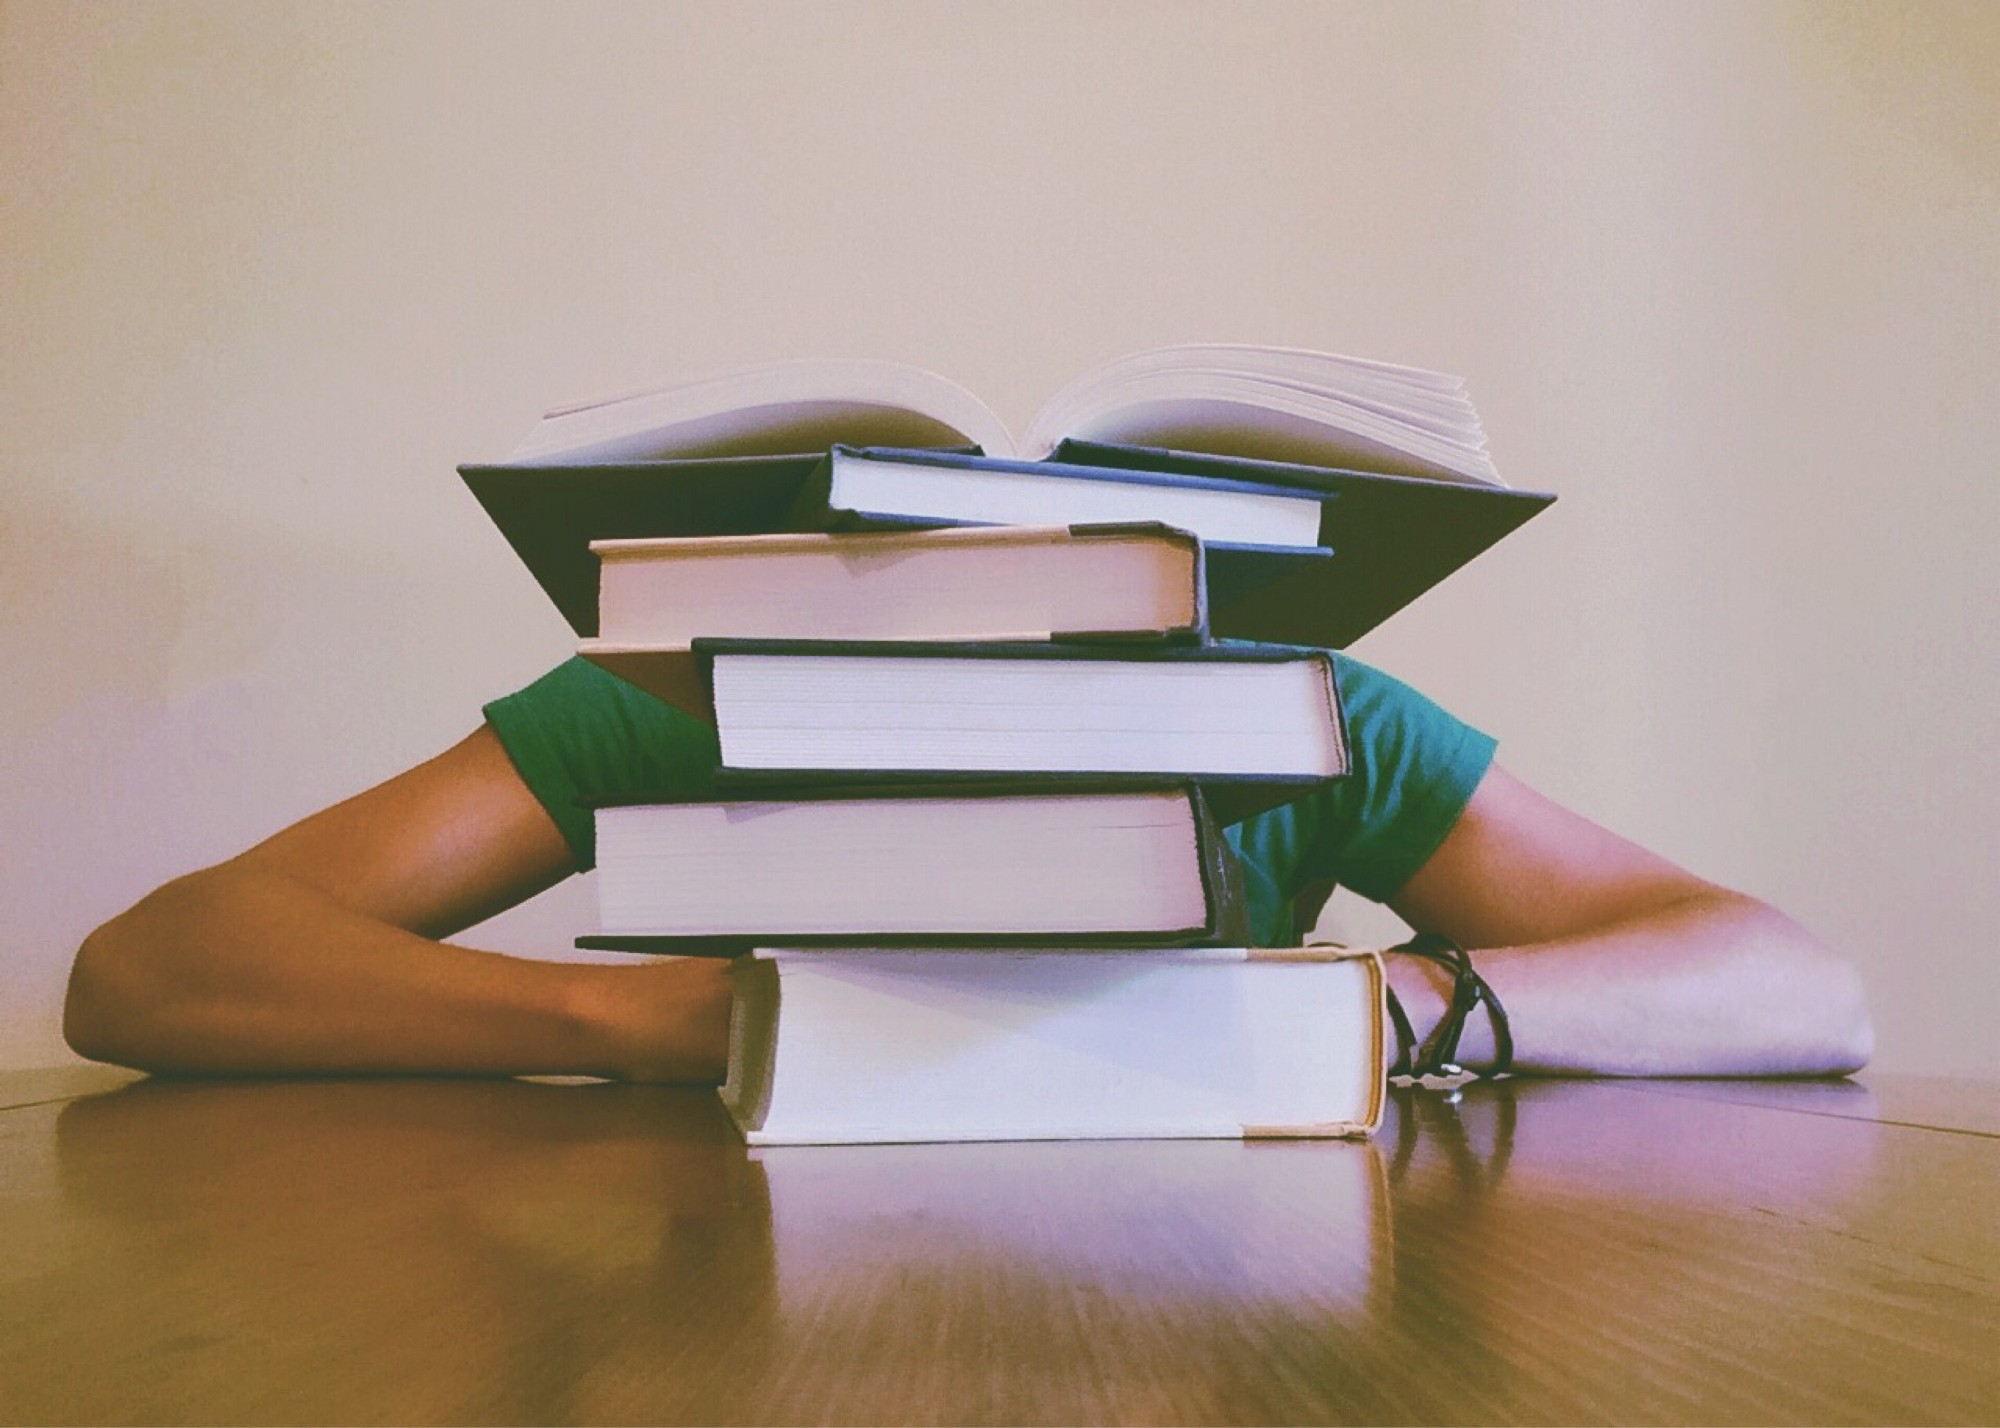 Person hidden behind stack of books